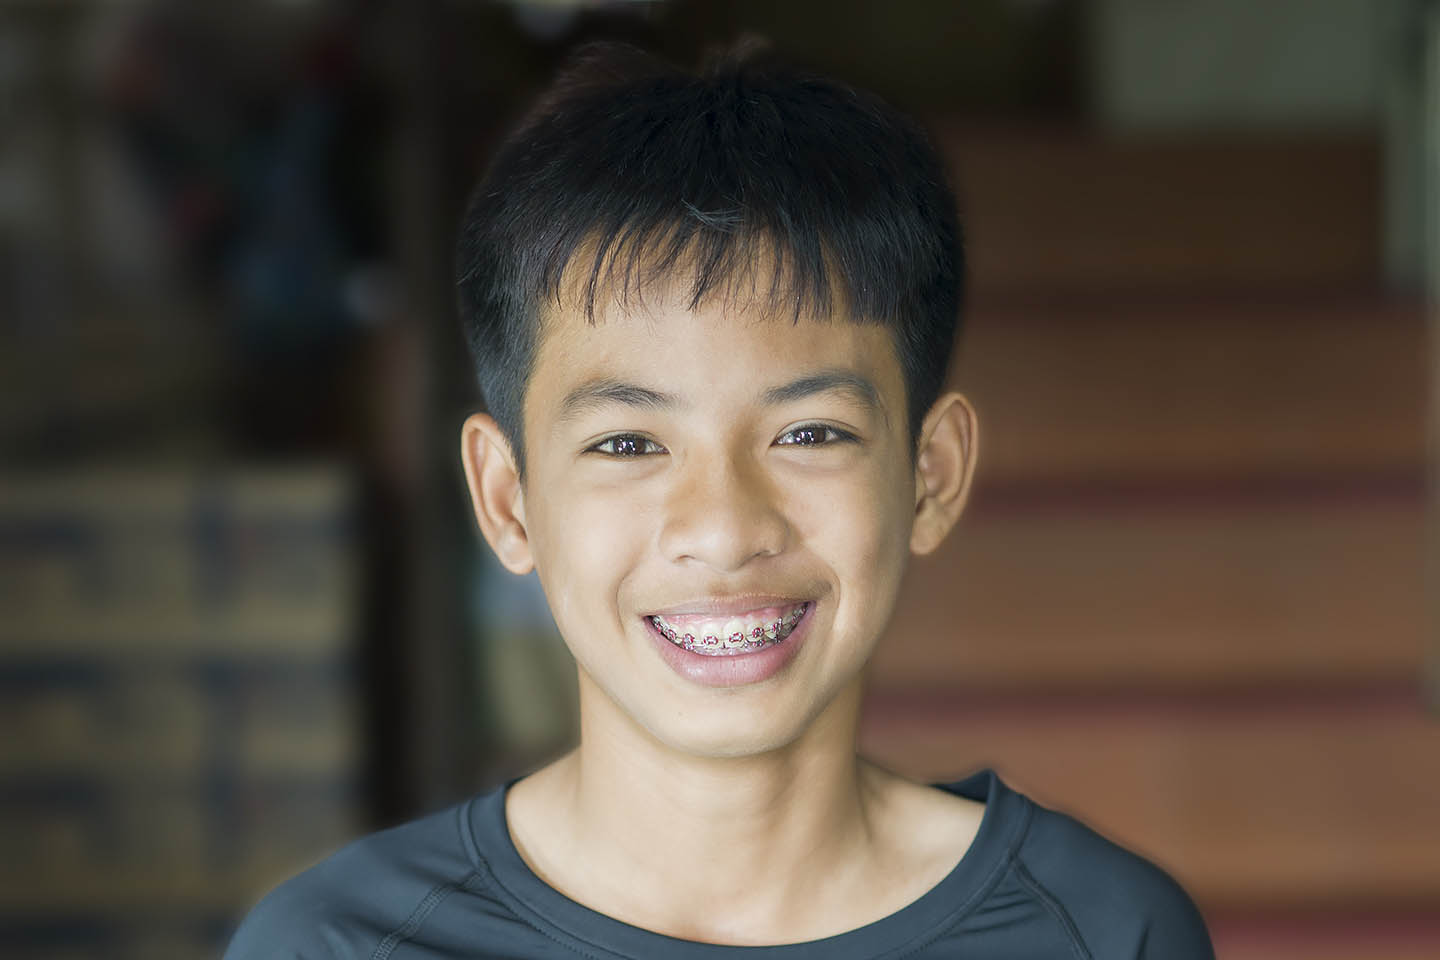 boy smiling with braces